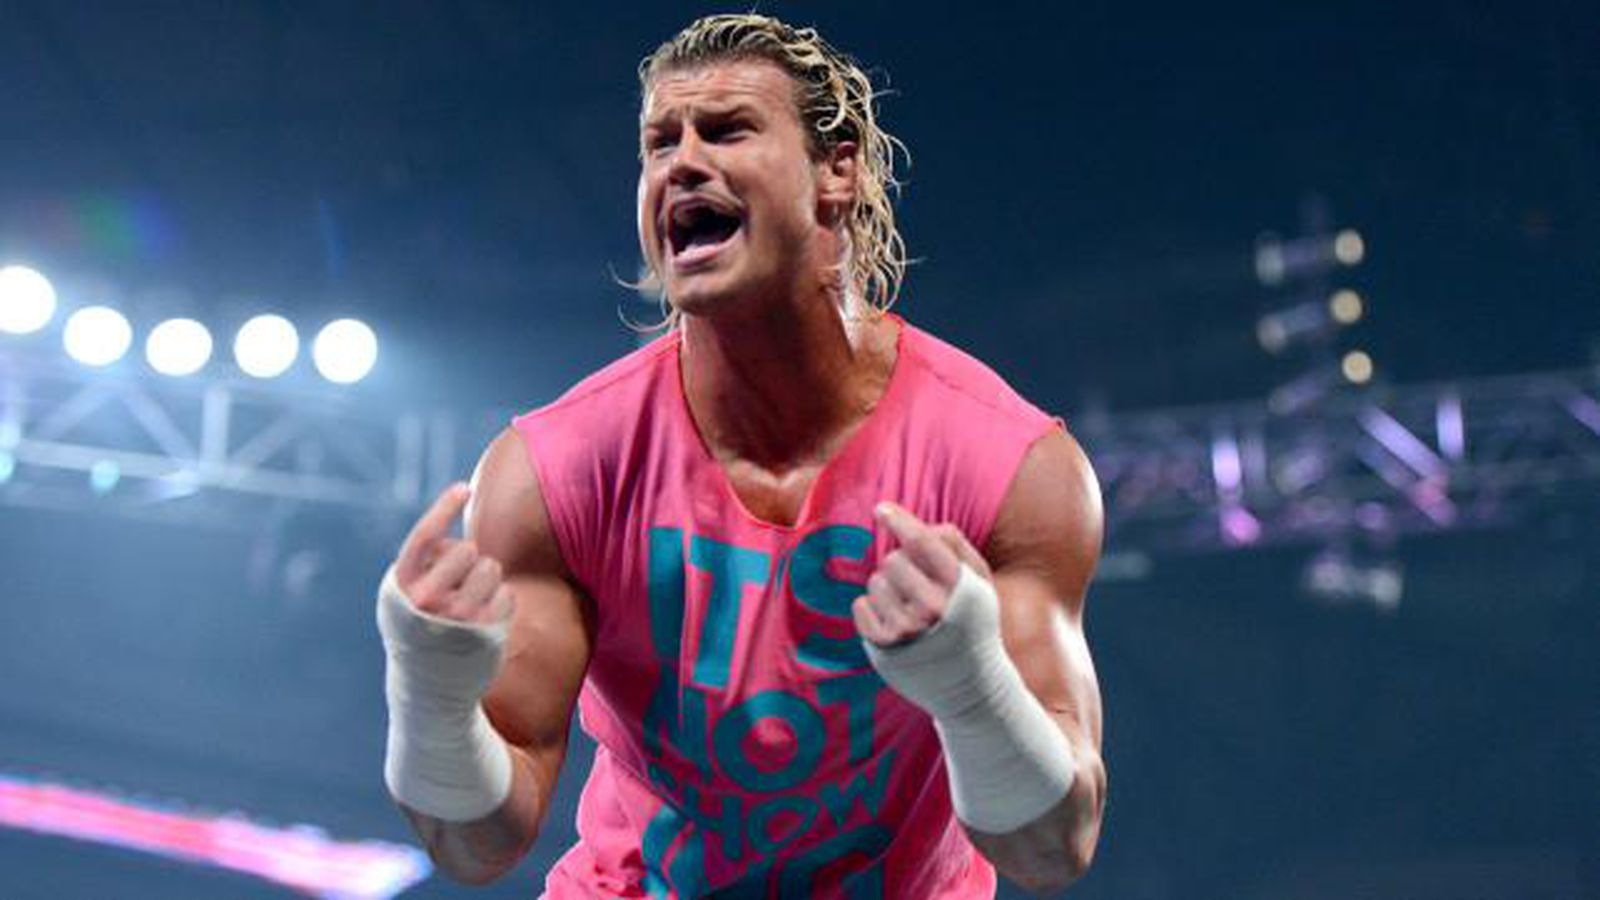 Dolph Ziggler 2018 Bold WWE World Champion